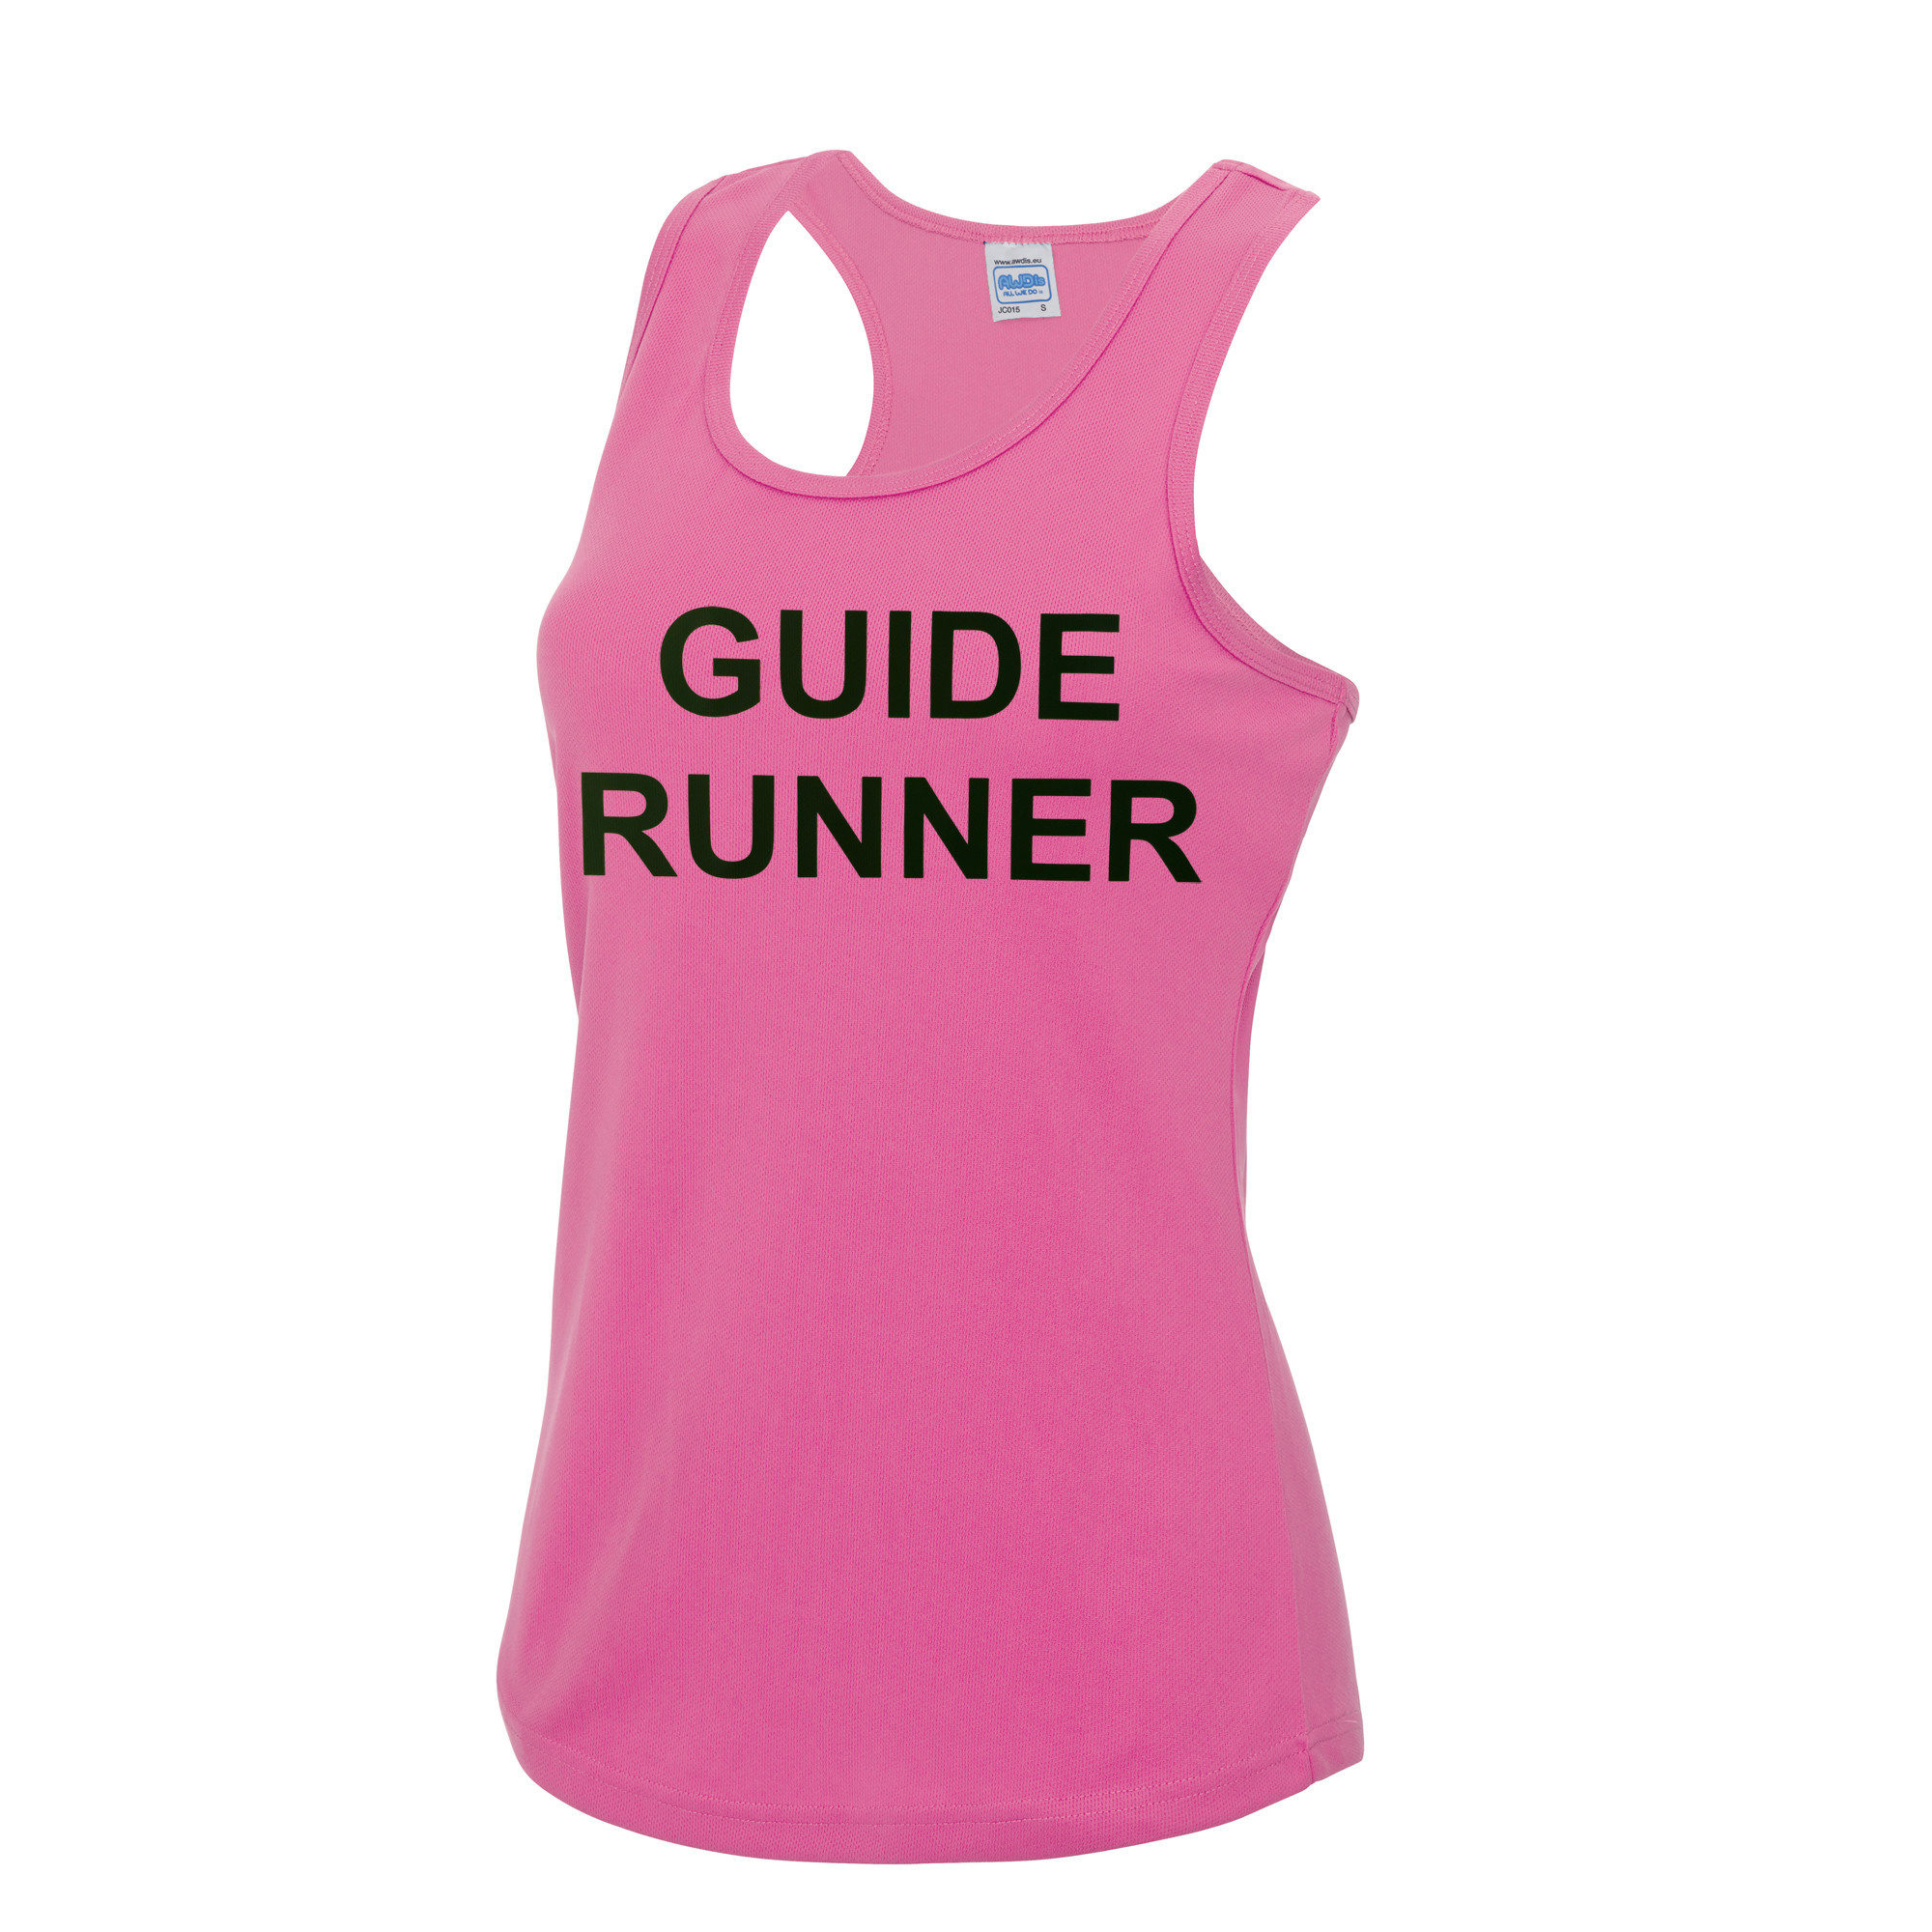 Ladies Blind Guide Runner Cool Vest